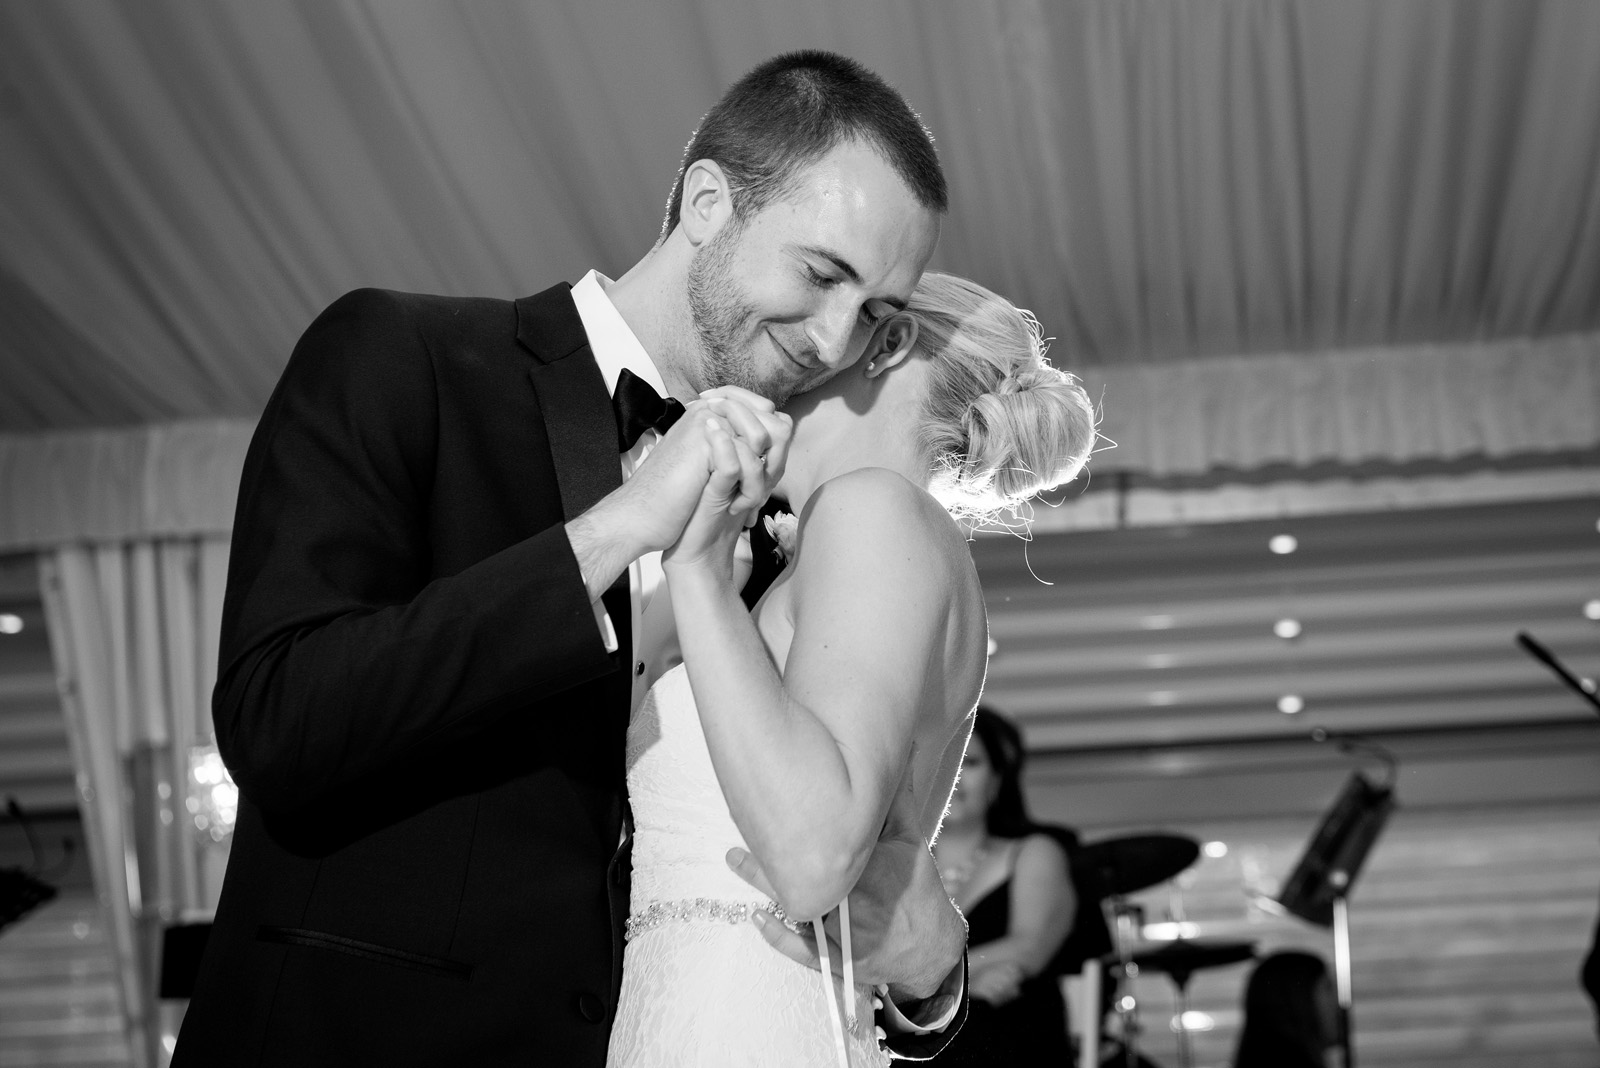 Romantic Black and White photo of Bride and Groom's First Dance